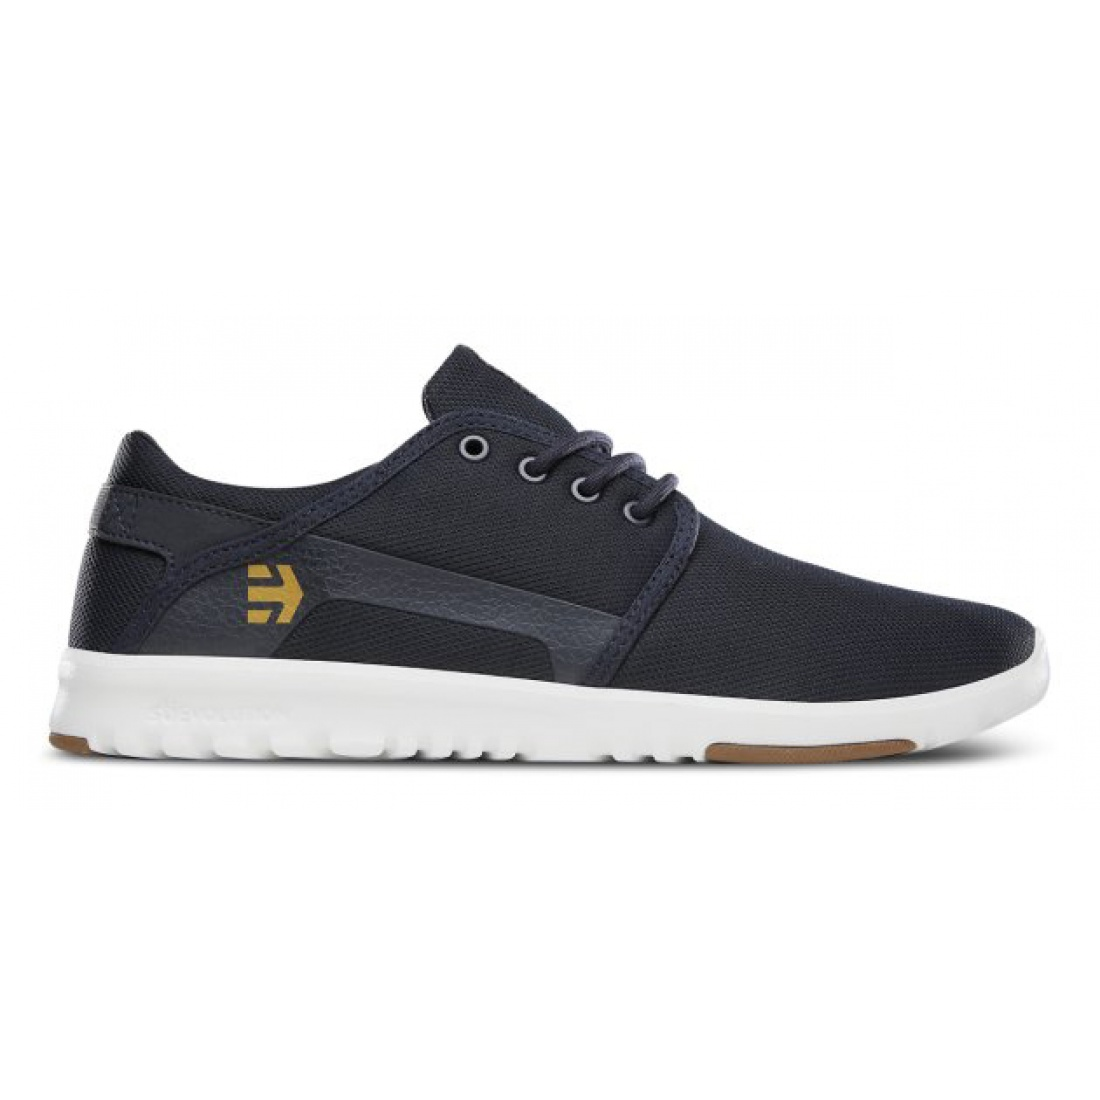 ETN-Scout Navy/White/Gum Shoes